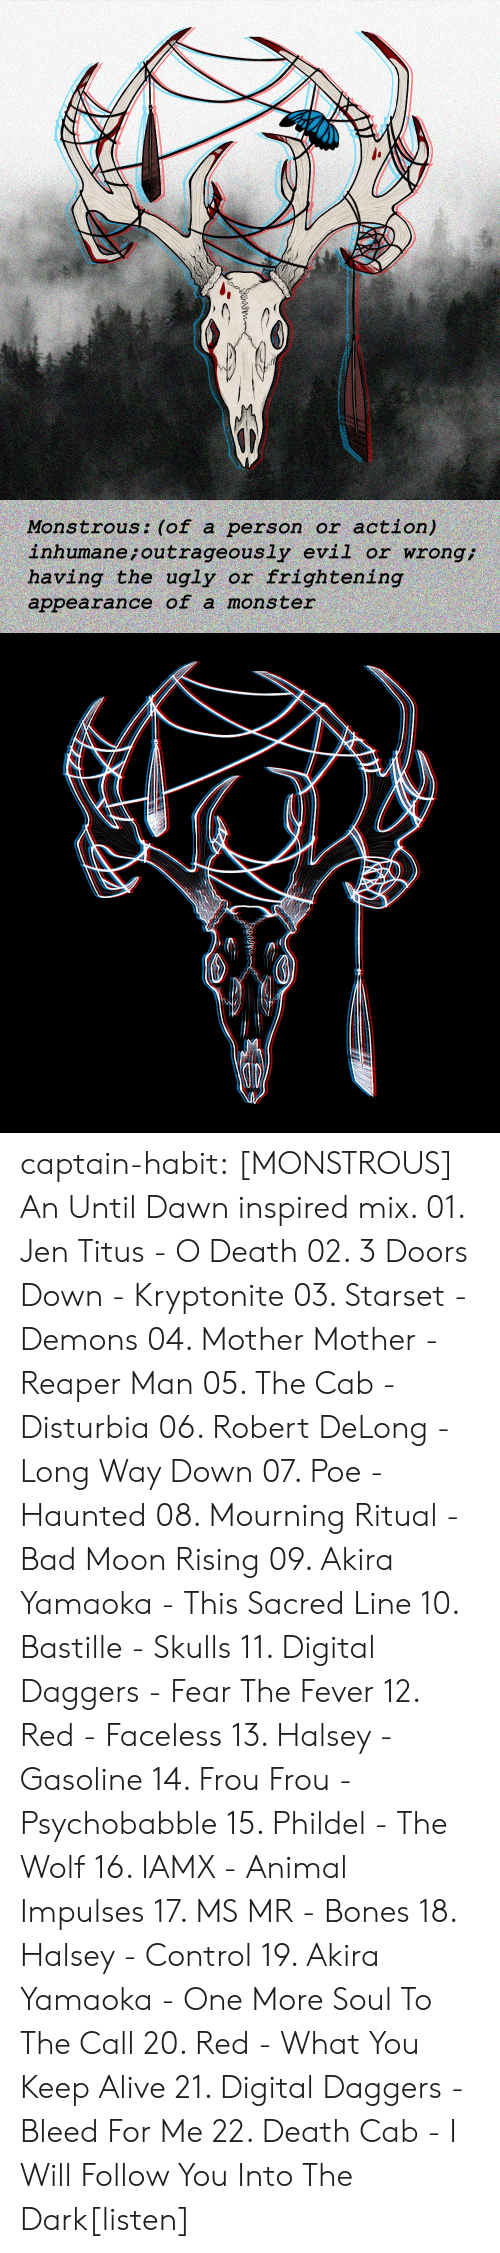 Alive, Bad, and Bones: action)  inhumane ; outrageously evil or wrong  having the ugly or frightening  Monstrous: (of a person or  appearance of a mons ter captain-habit:  [MONSTROUS] An Until Dawn inspired mix. 01. Jen Titus - O Death 02. 3 Doors Down - Kryptonite 03. Starset - Demons 04. Mother Mother - Reaper Man 05. The Cab - Disturbia 06. Robert DeLong - Long Way Down 07. Poe - Haunted  08. Mourning Ritual - Bad Moon Rising 09. Akira Yamaoka - This Sacred Line 10. Bastille - Skulls 11. Digital Daggers - Fear The Fever 12. Red - Faceless 13. Halsey - Gasoline  14. Frou Frou - Psychobabble  15. Phildel - The Wolf 16. IAMX - Animal Impulses 17. MS MR - Bones 18. Halsey - Control 19. Akira Yamaoka - One More Soul To The Call 20. Red - What You Keep Alive 21. Digital Daggers - Bleed For Me 22. Death Cab - I Will Follow You Into The Dark[listen]